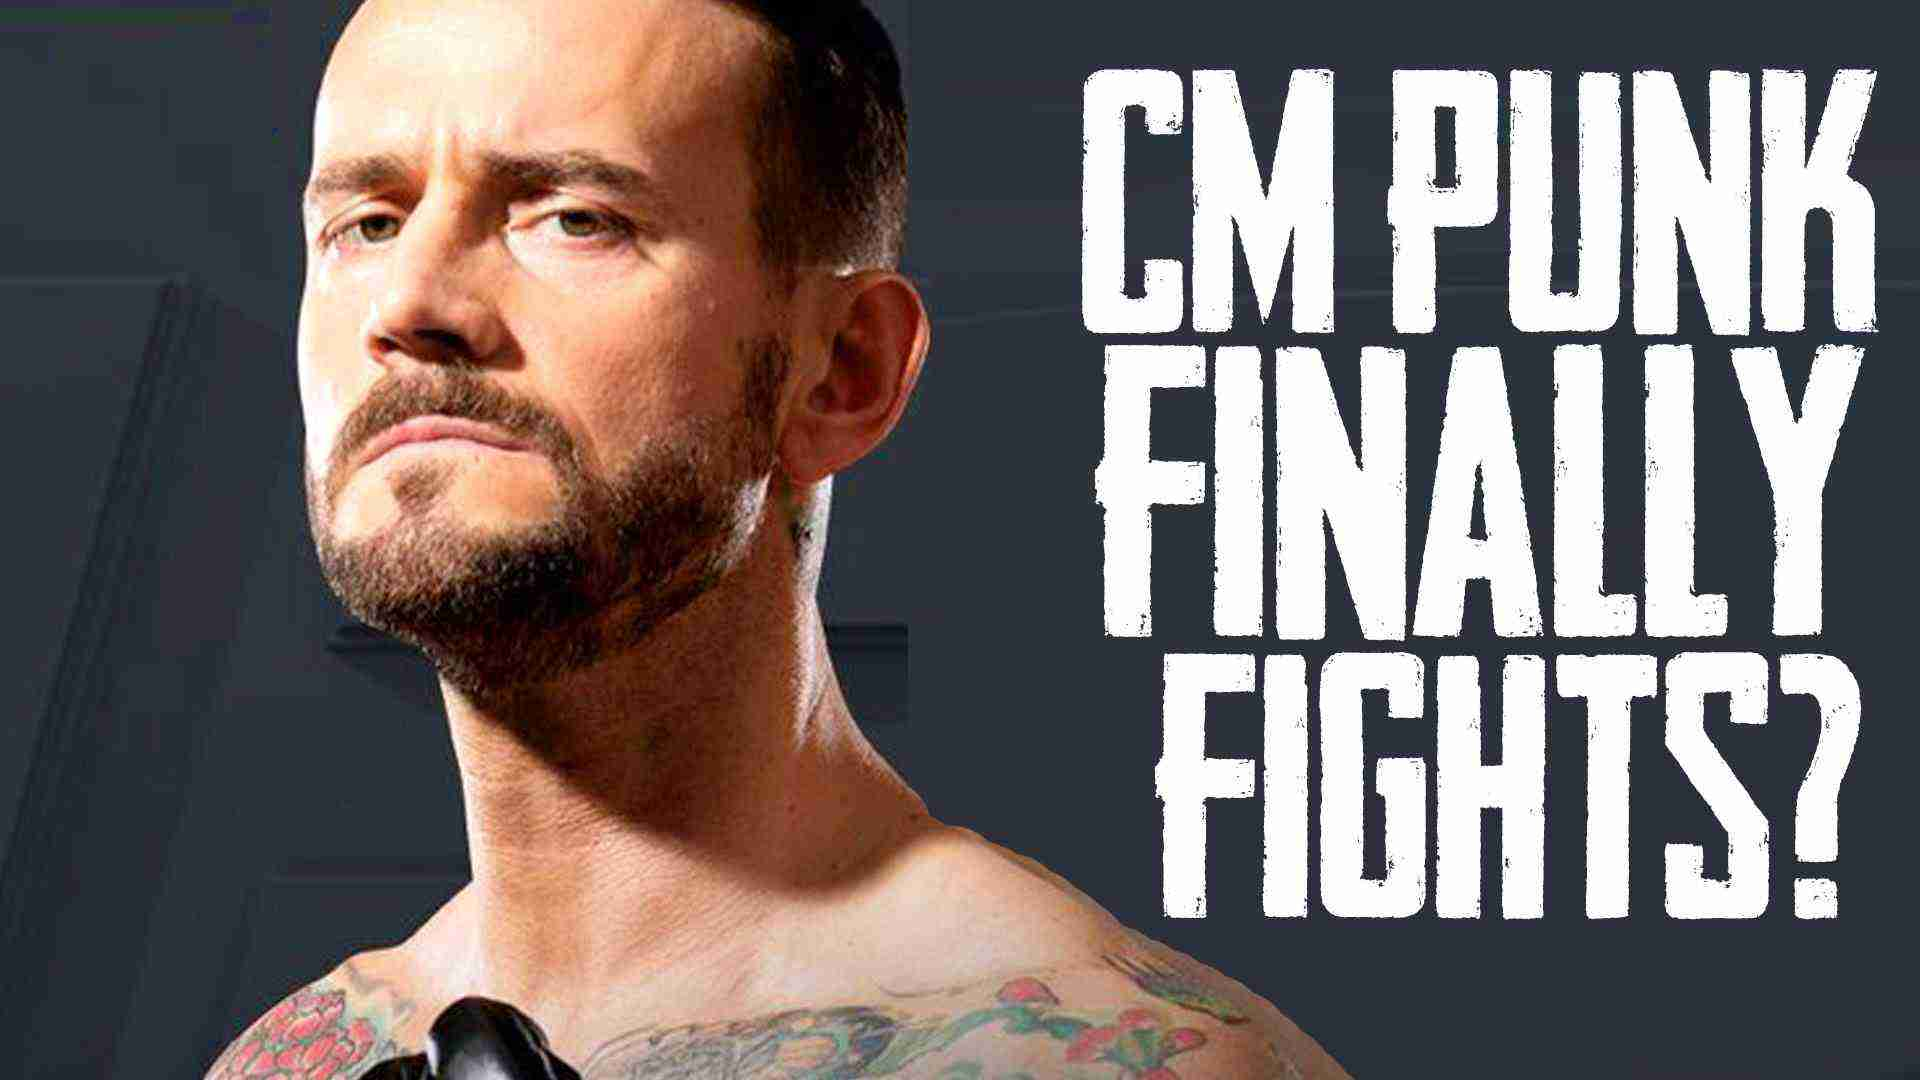 CM PUNK TO FIGHT AT UFC 203! (NXT and WWE Smackdown Recap and Results w/ Steve and Larson)